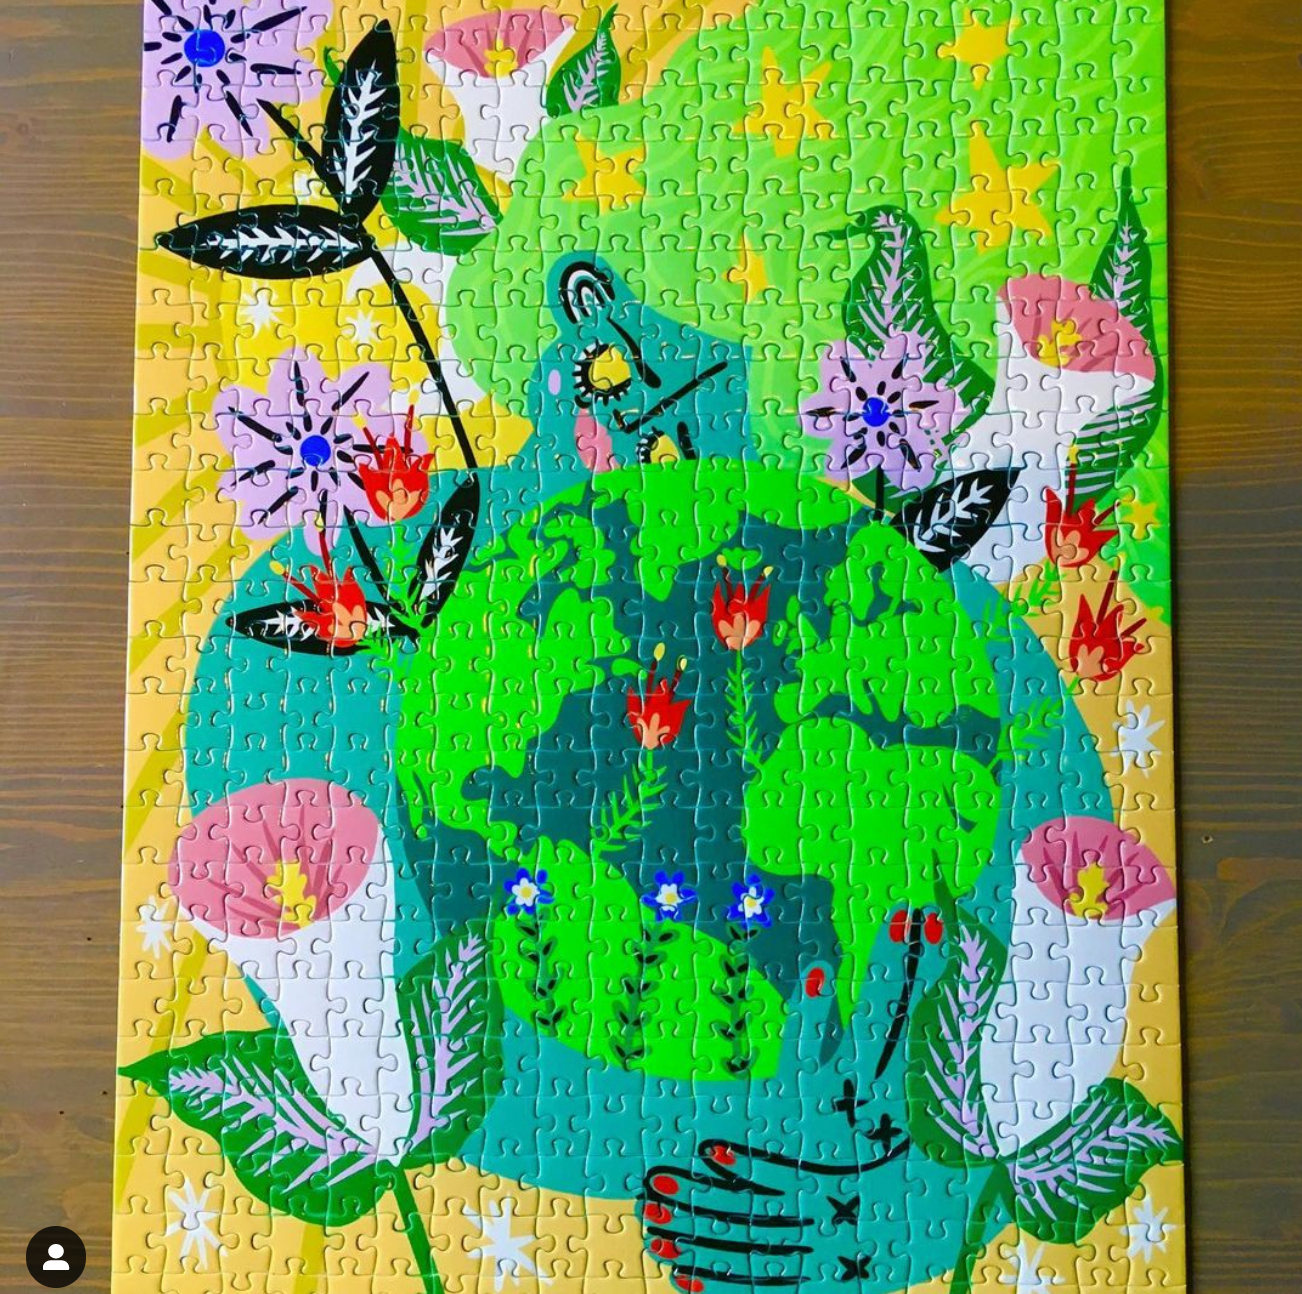 From Instagram: Earth Mother puzzle by @amy.e.dorner